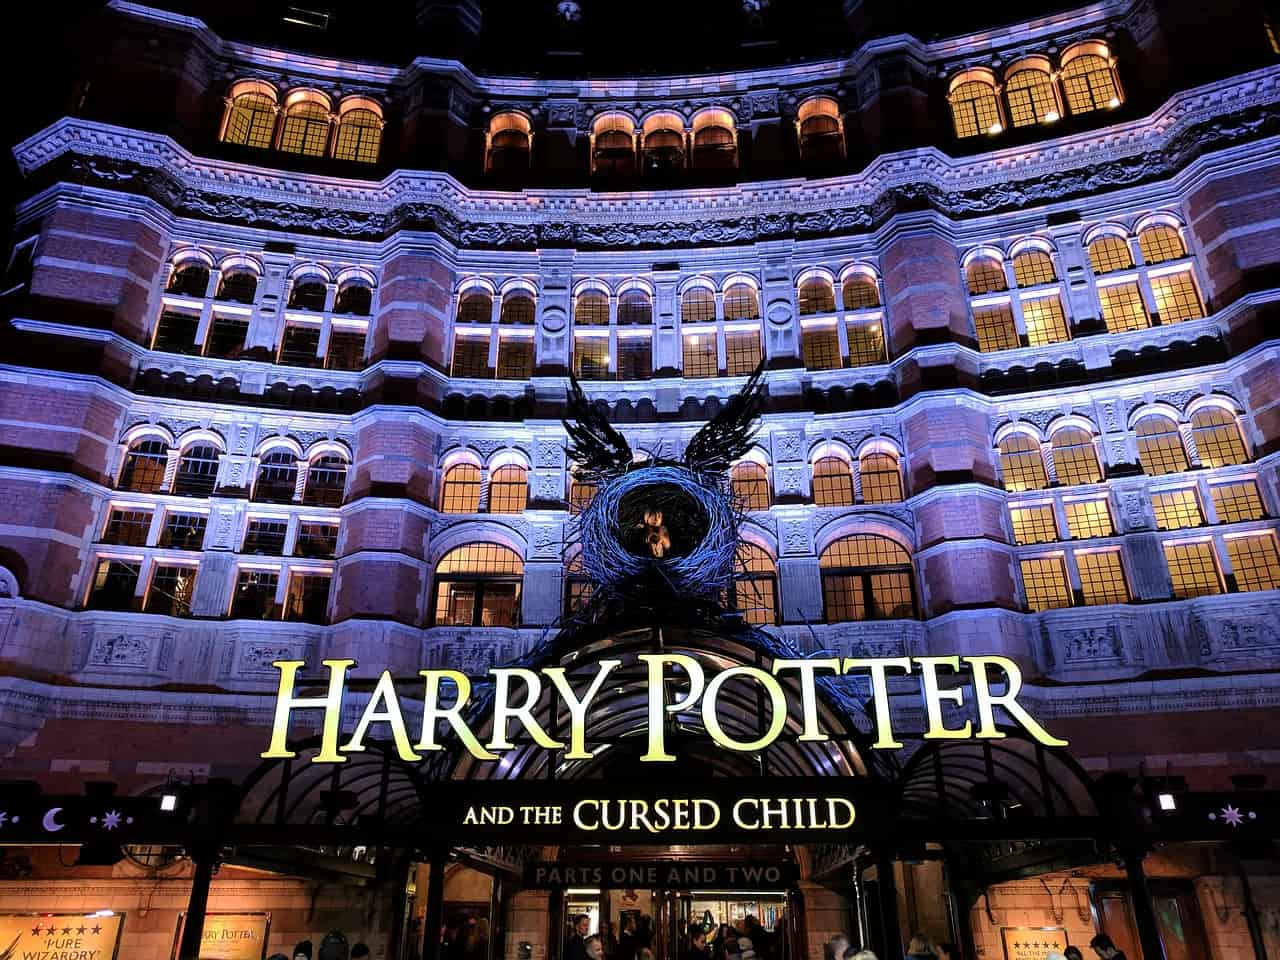 Harry Potter Theater - Das verwunschene Kind in Hamburg Komplettpaket